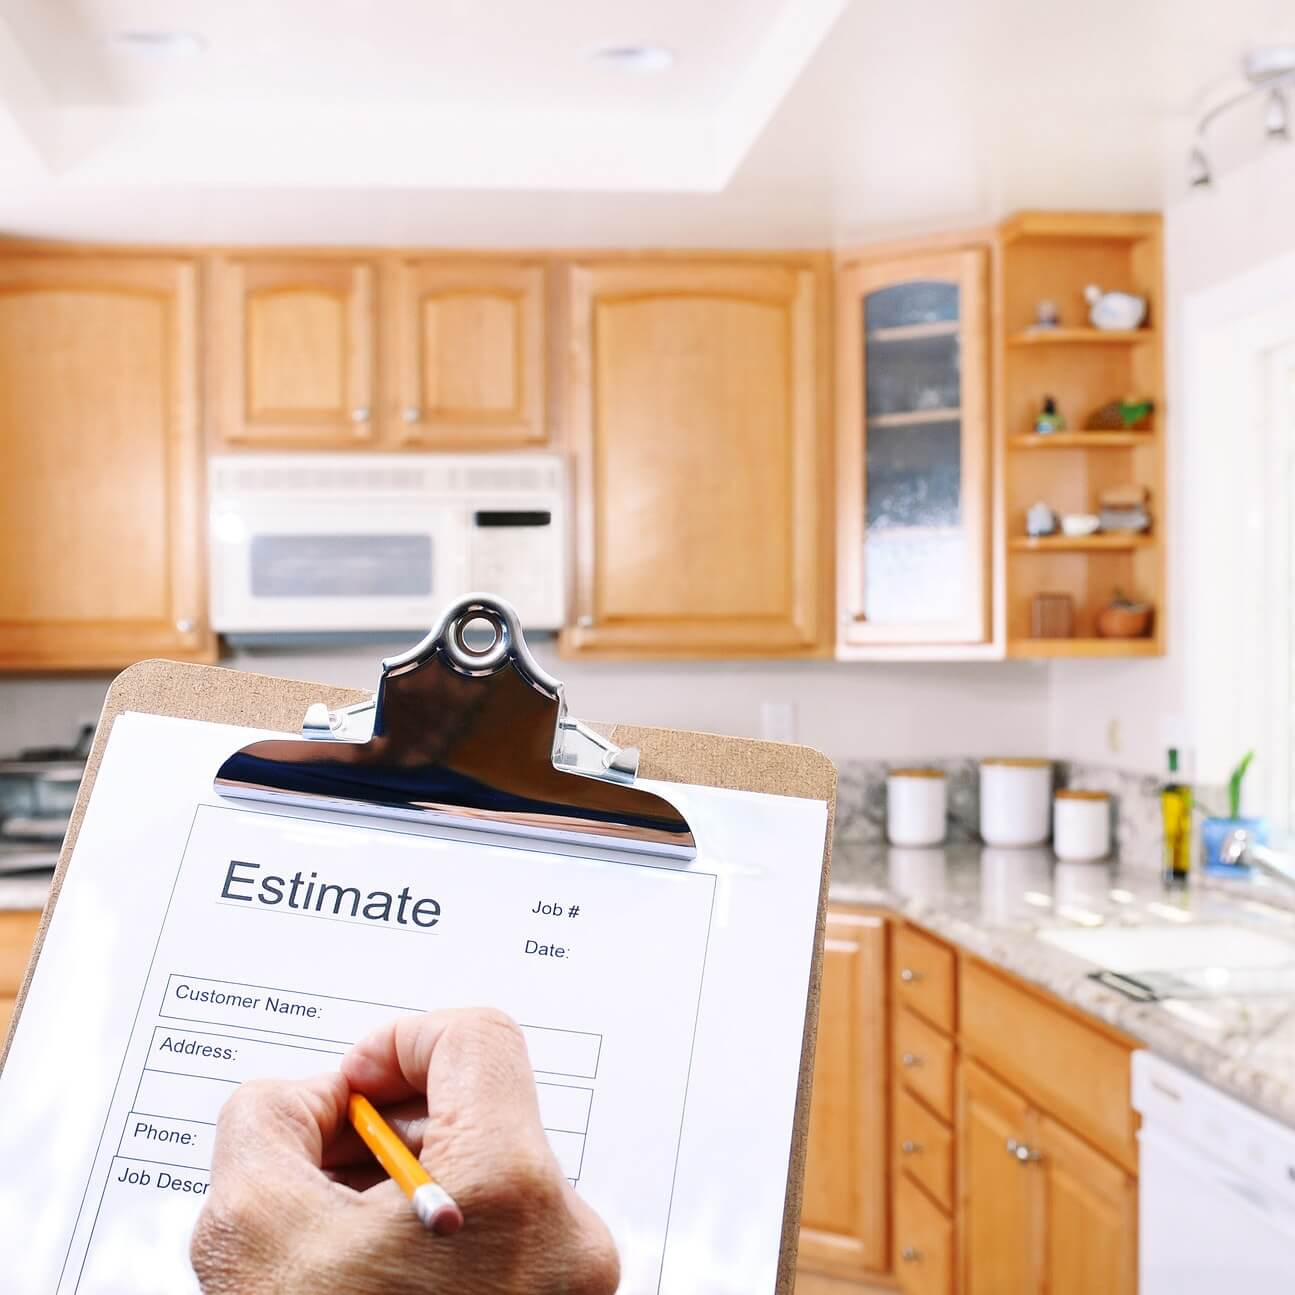 Emergency Contractor and Home Repairs | RamGo Remodeling | Home contractor services in Frisco, Little Elm, Prosper, Plano, Lantana and all North Dallas